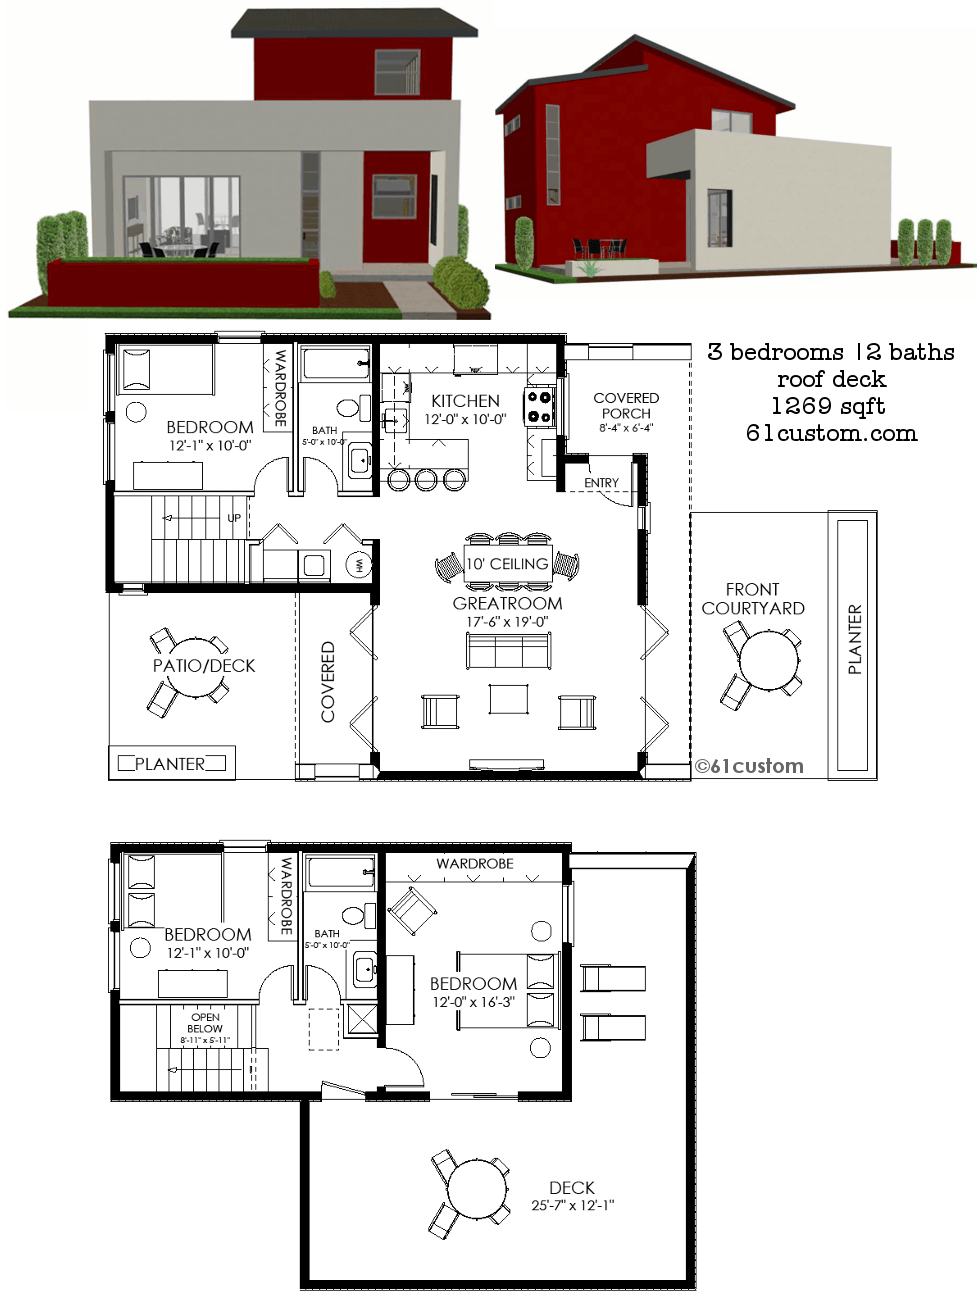 Contemporary Home Plans Of Modern House Plans Floor Plans Contemporary Home Plans